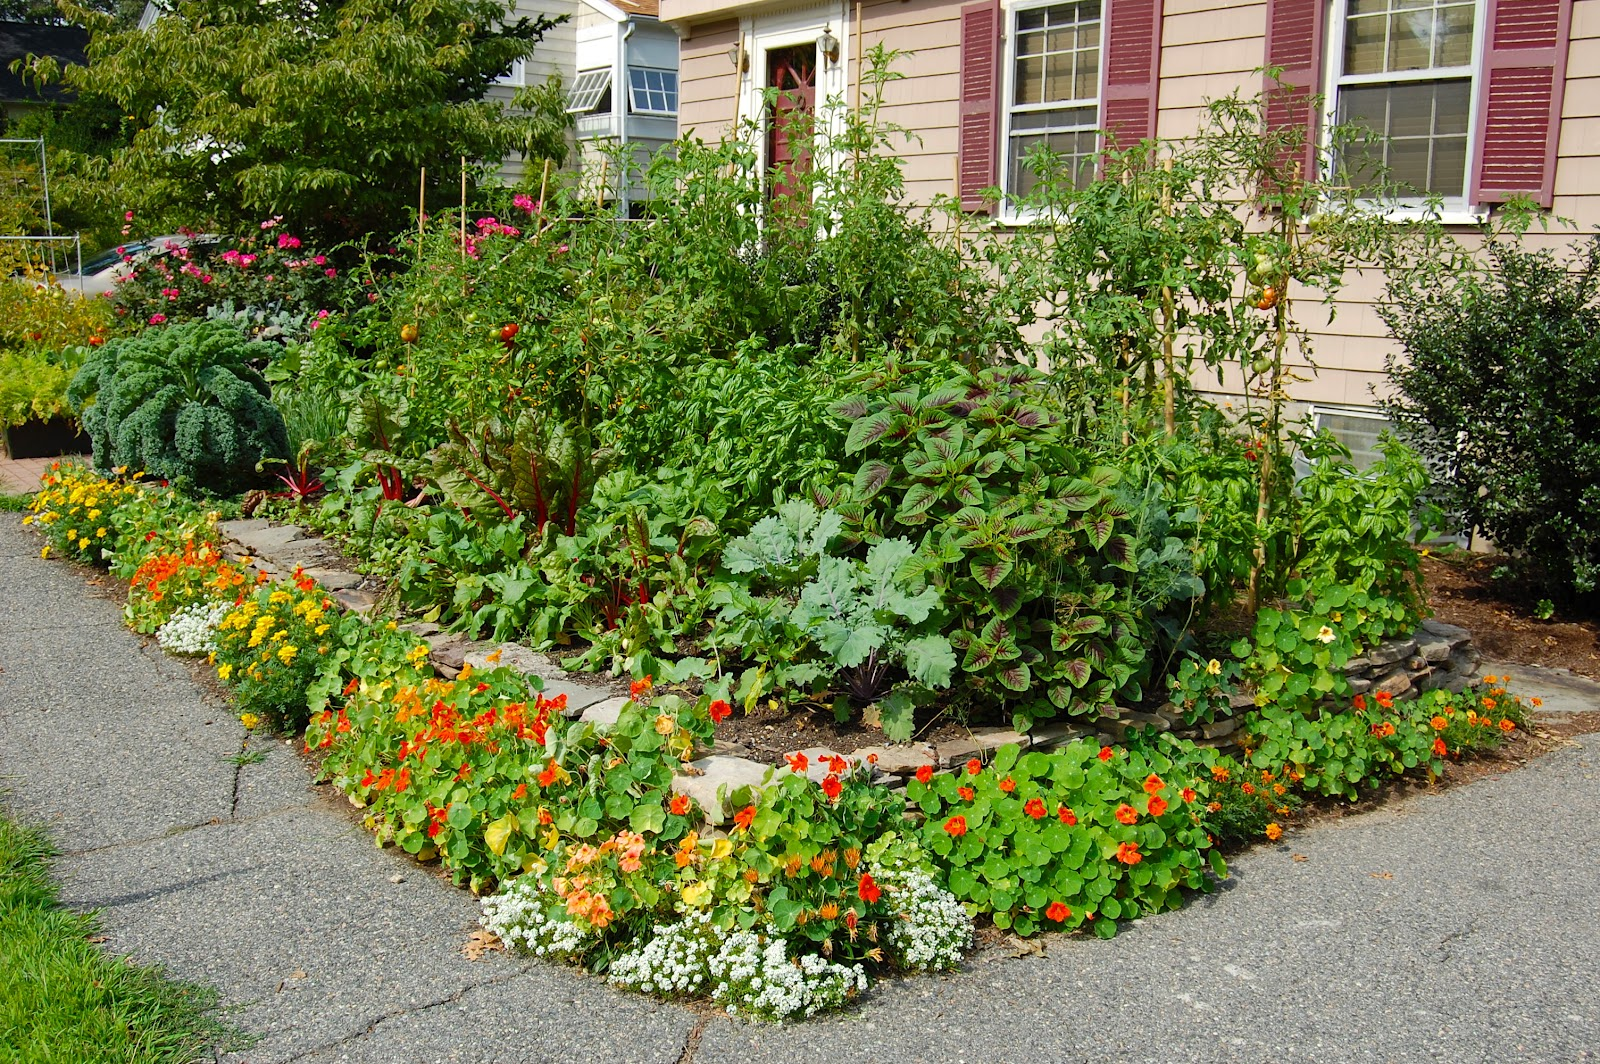 Landscaping landscaping ideas for front yard edible gardens for Edible garden design ideas